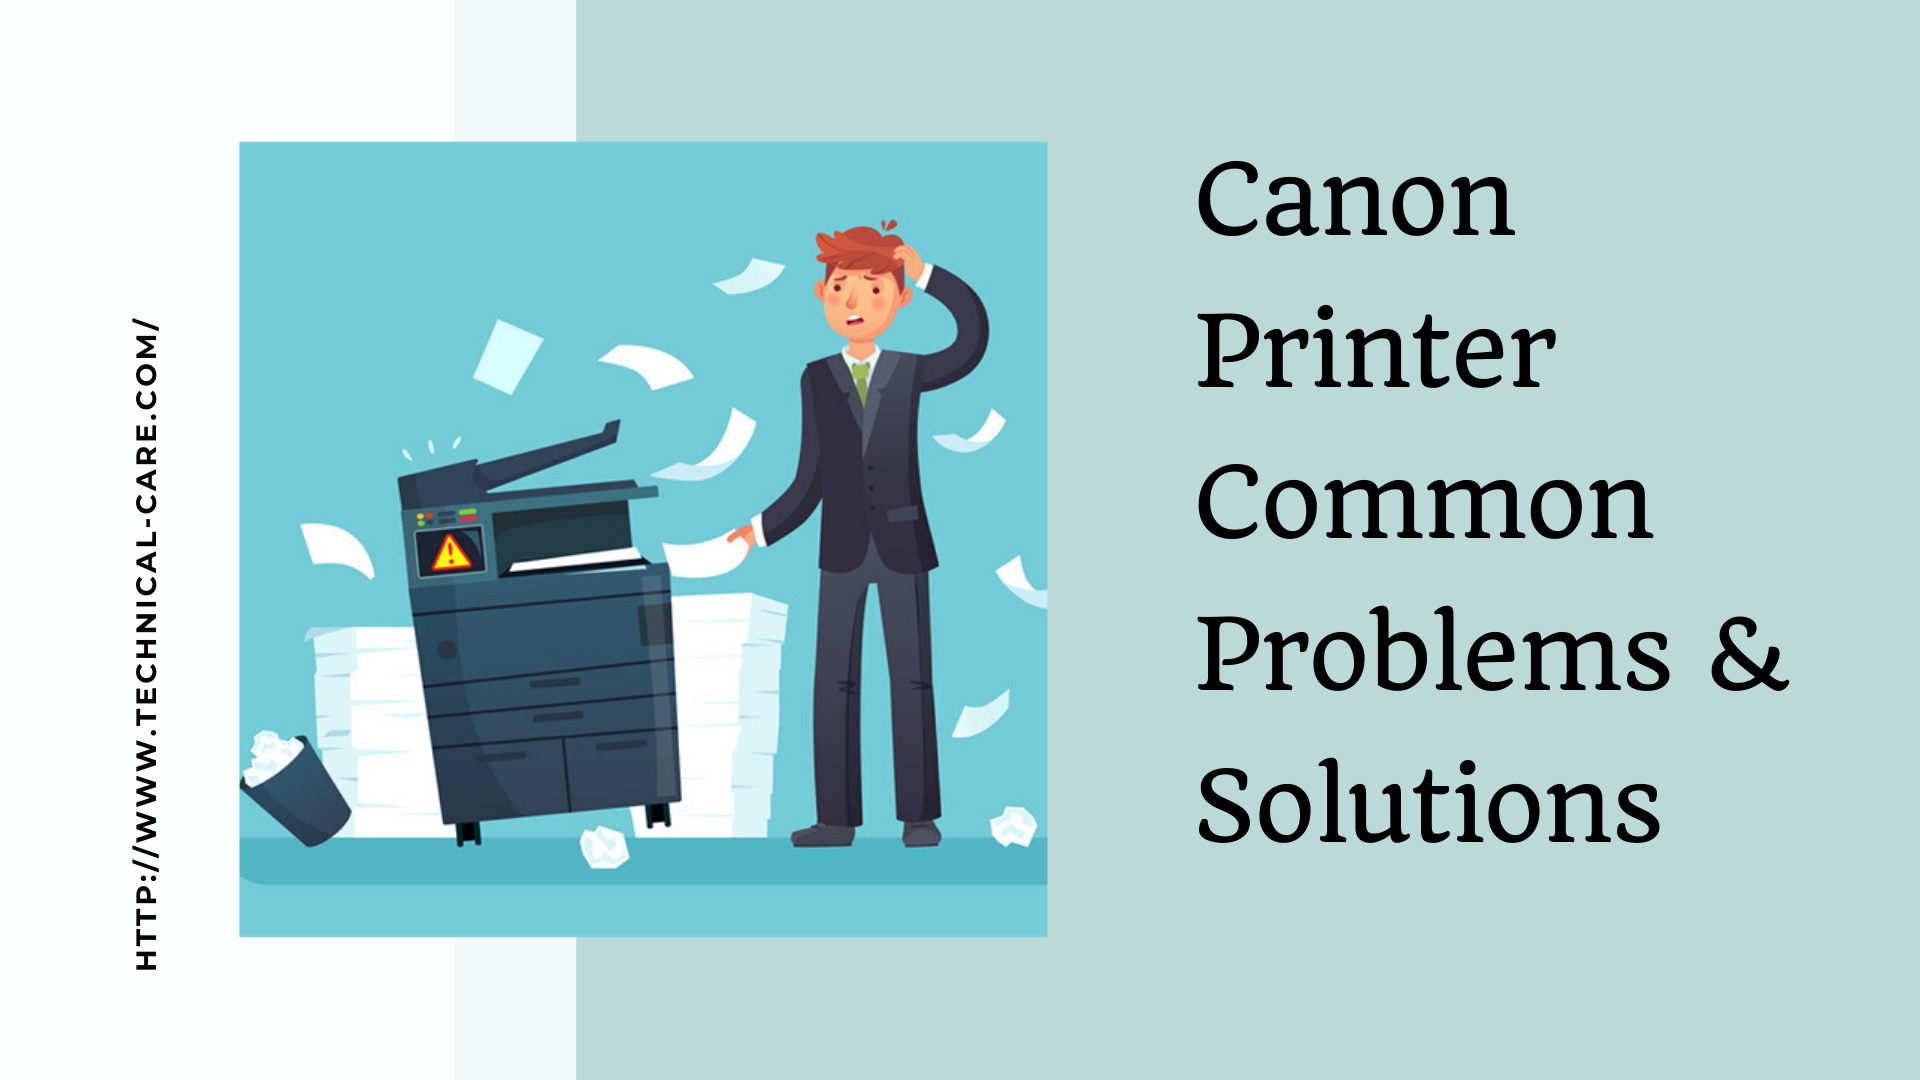 Canon Printer Common Problems & Solutions